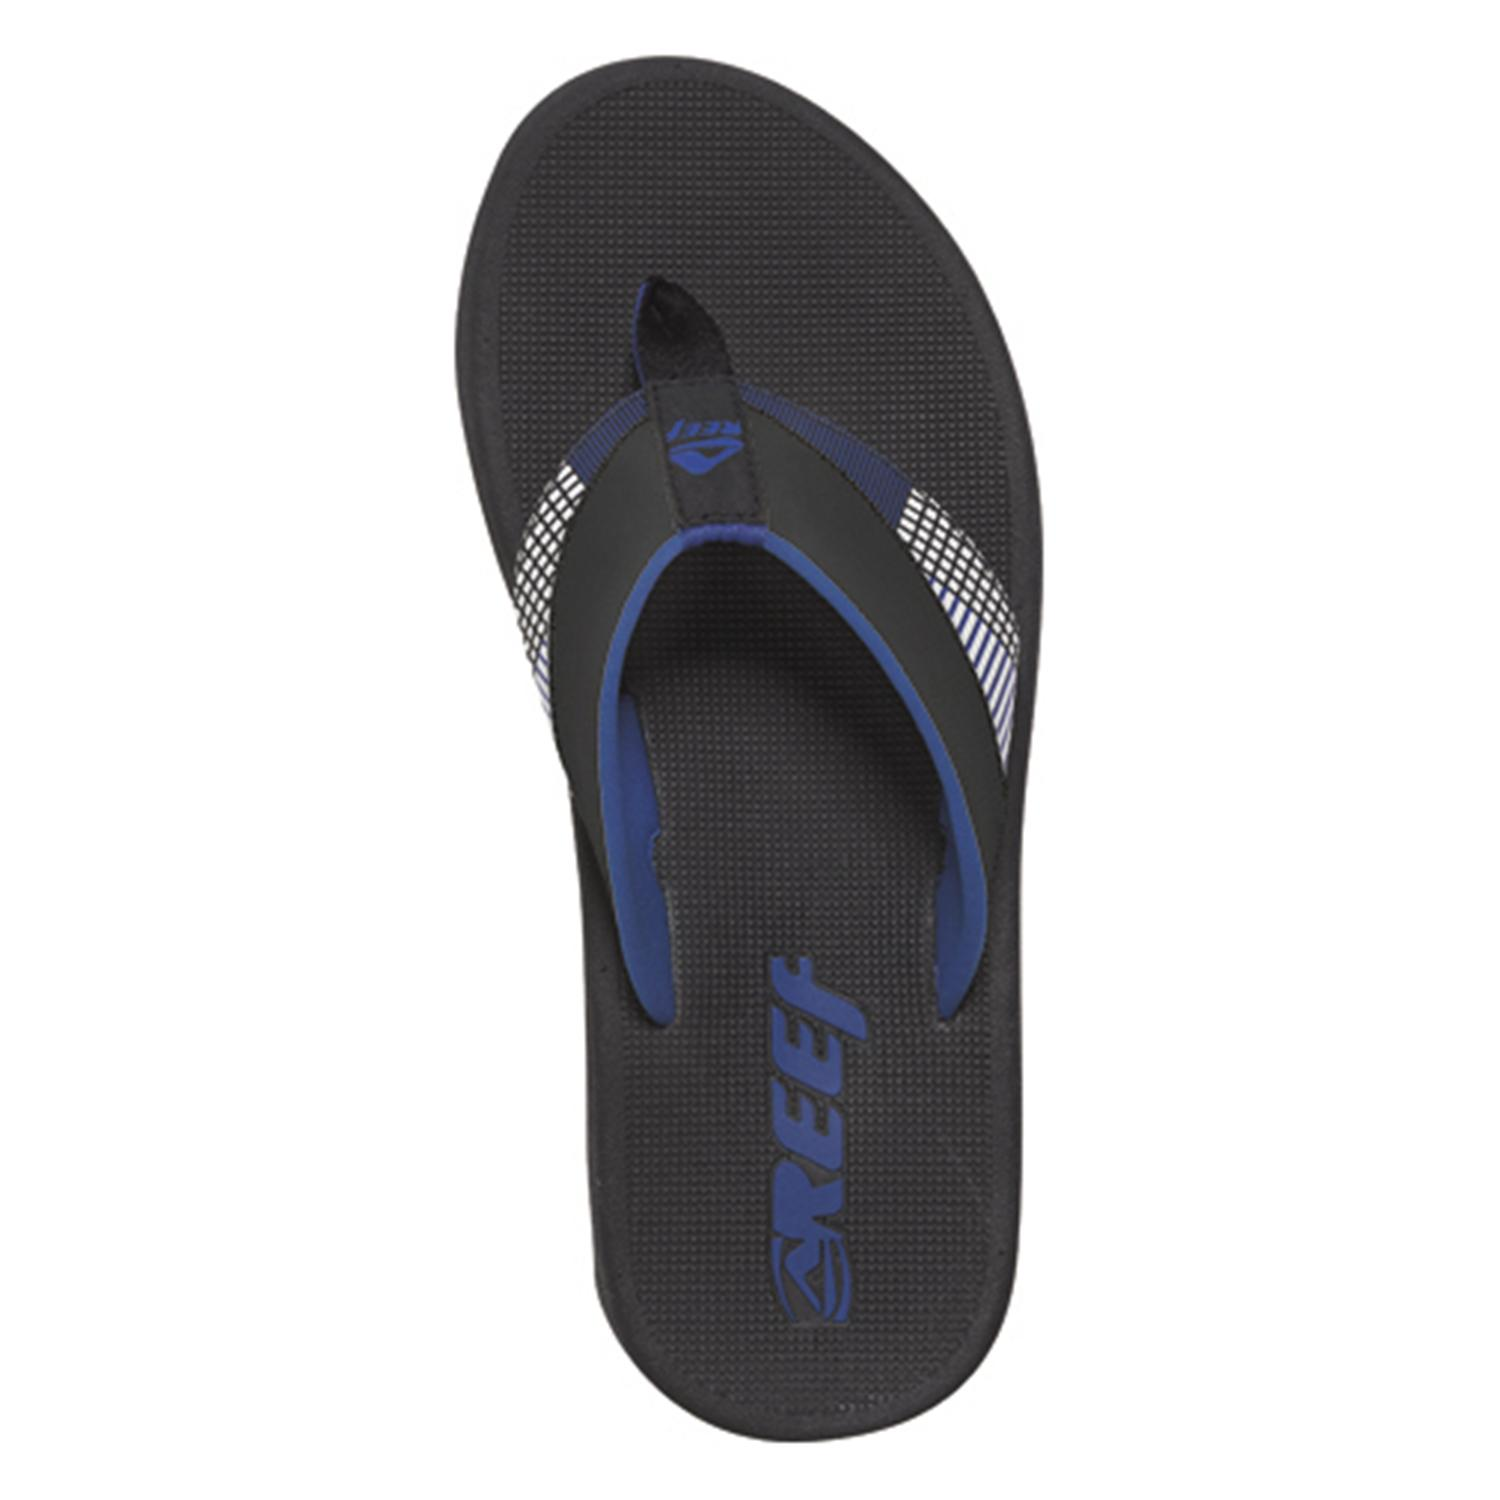 Original Reef Sandals Stash  Mens Sandals